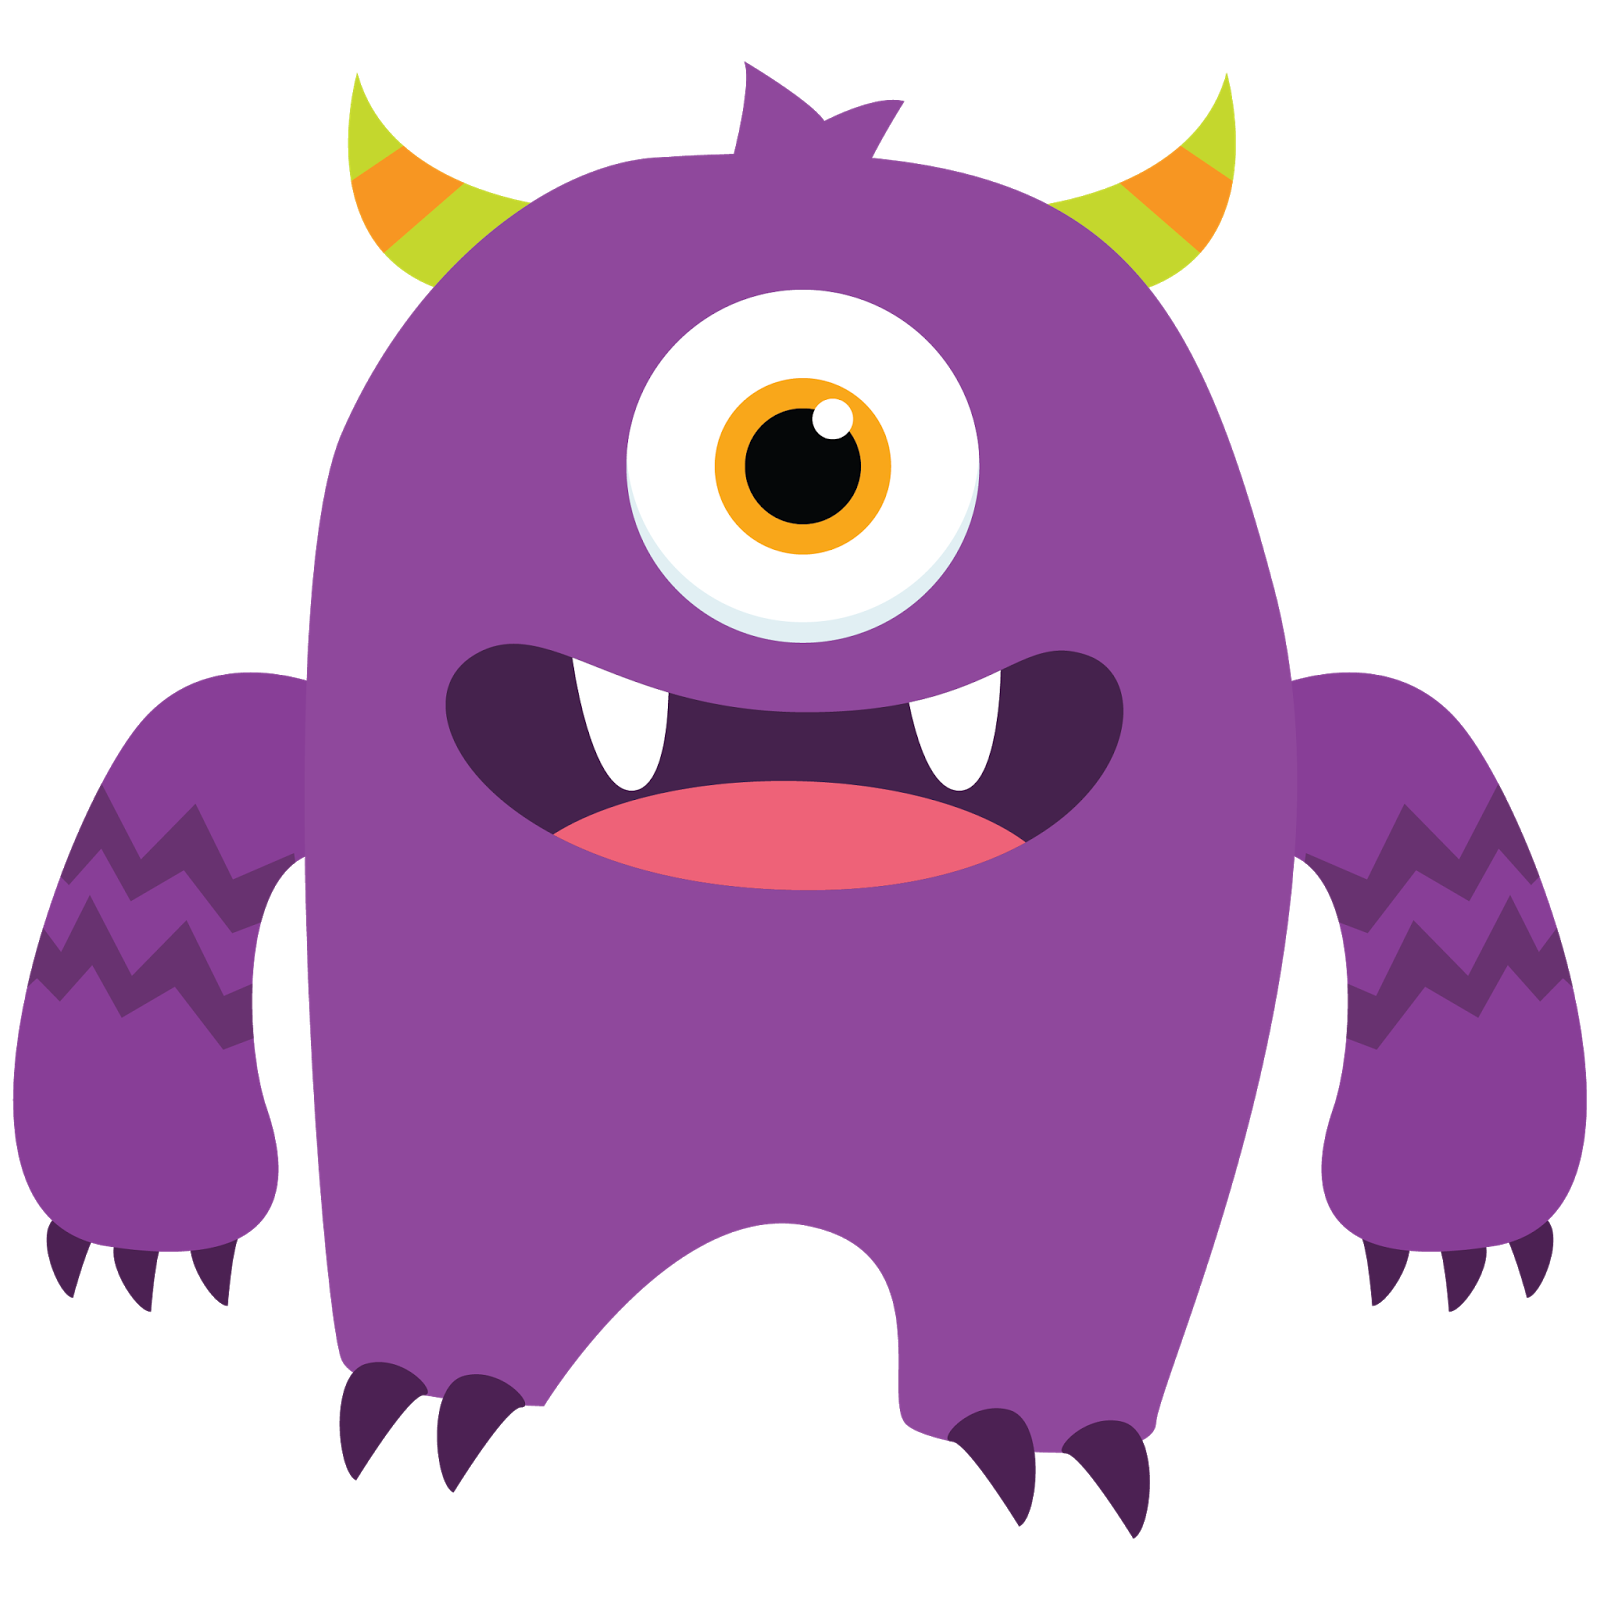 Monster clipart. Free images cute pinterest